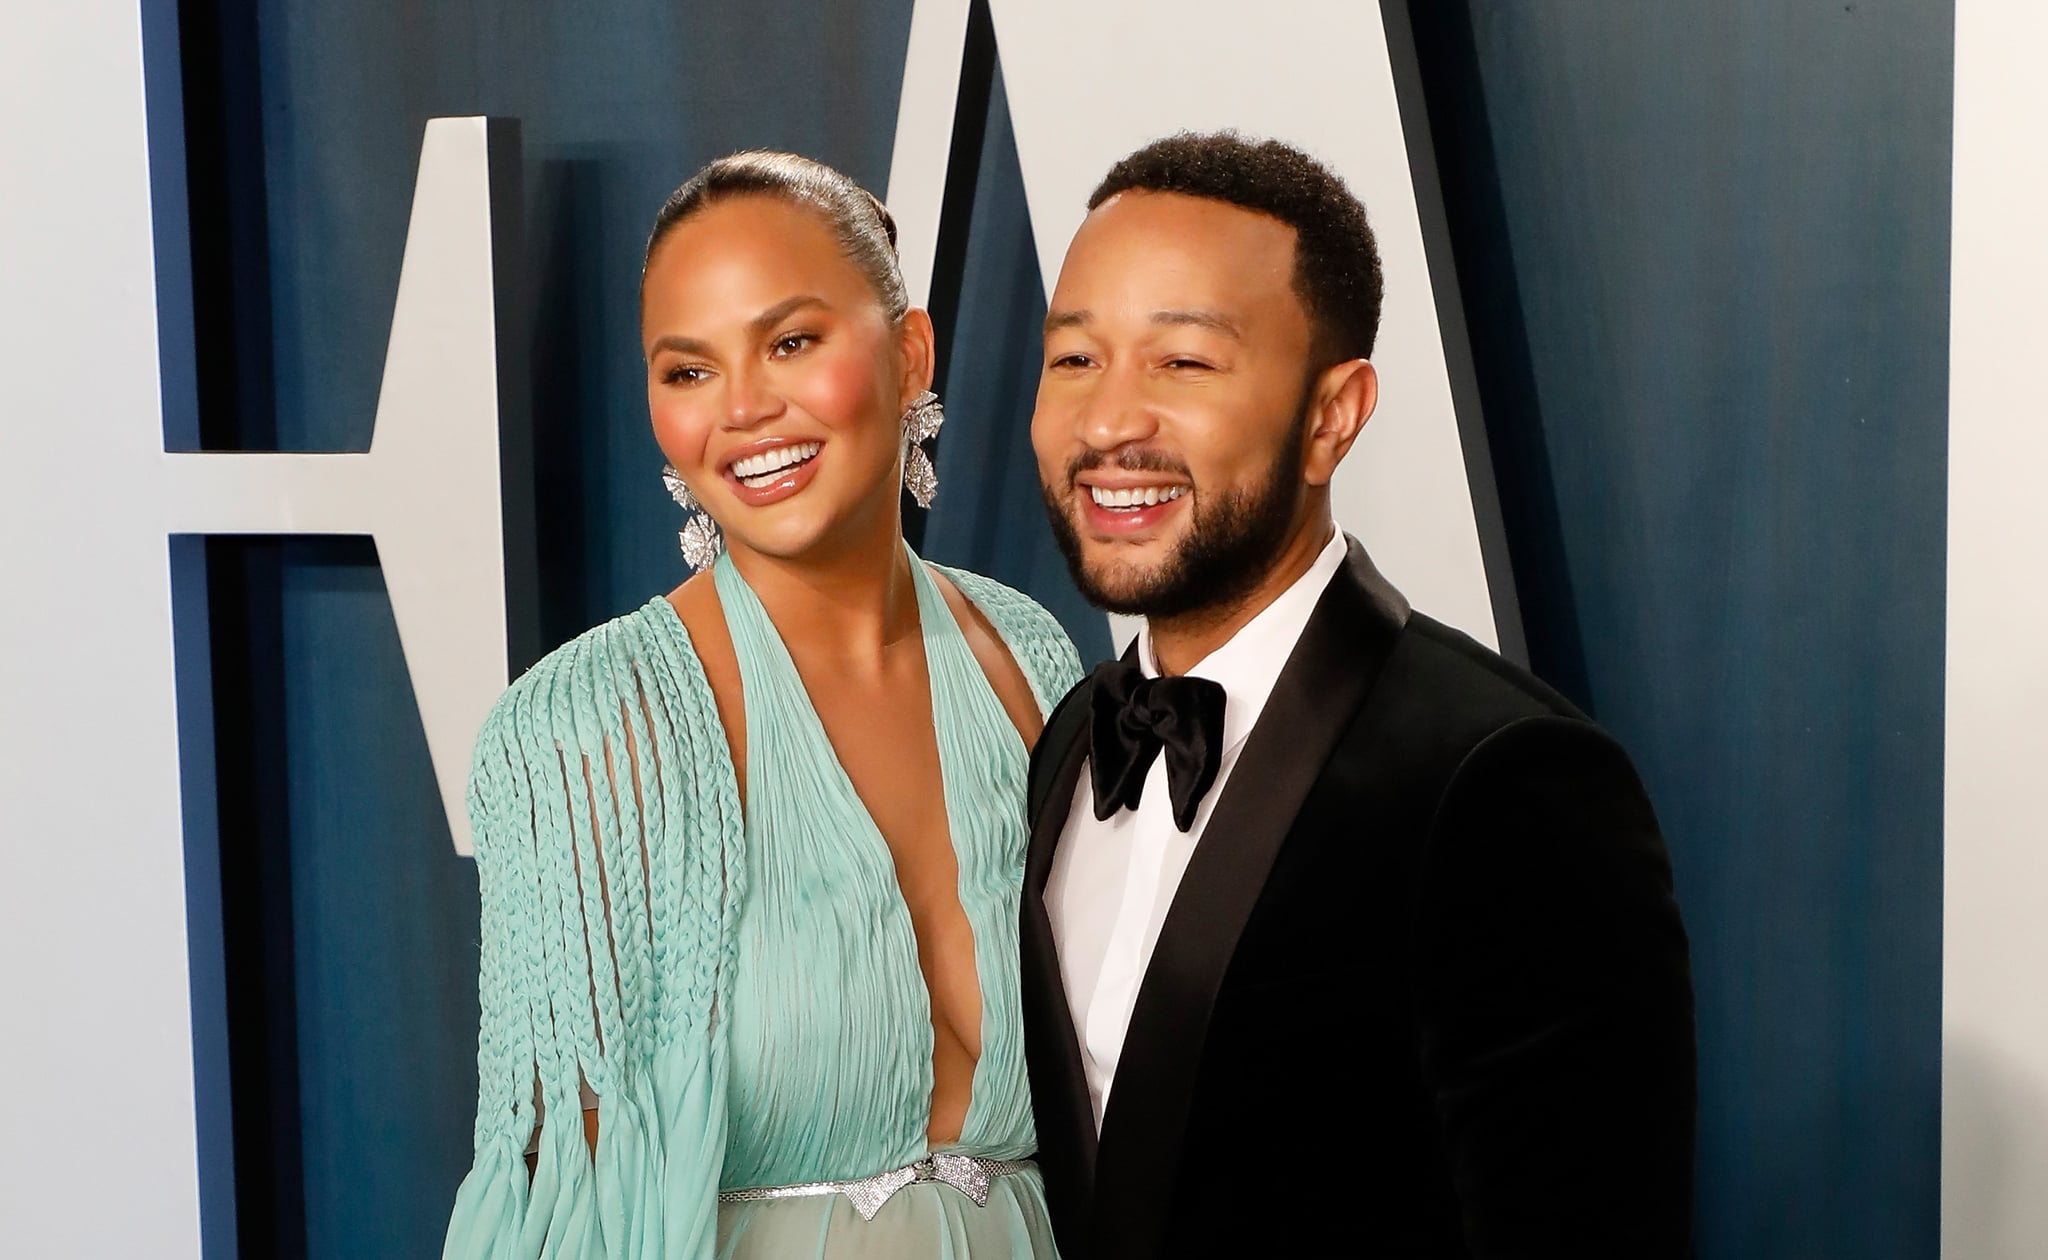 BEVERLY HILLS, CALIFORNIA - FEBRUARY 09:  (L-R) Chrissy Teigen and John Legend attend the 2020 Vanity Fair Oscar Party at Wallis Annenberg Center for the Performing Arts on February 09, 2020 in Beverly Hills, California. (Photo by Taylor Hill/FilmMagic,)